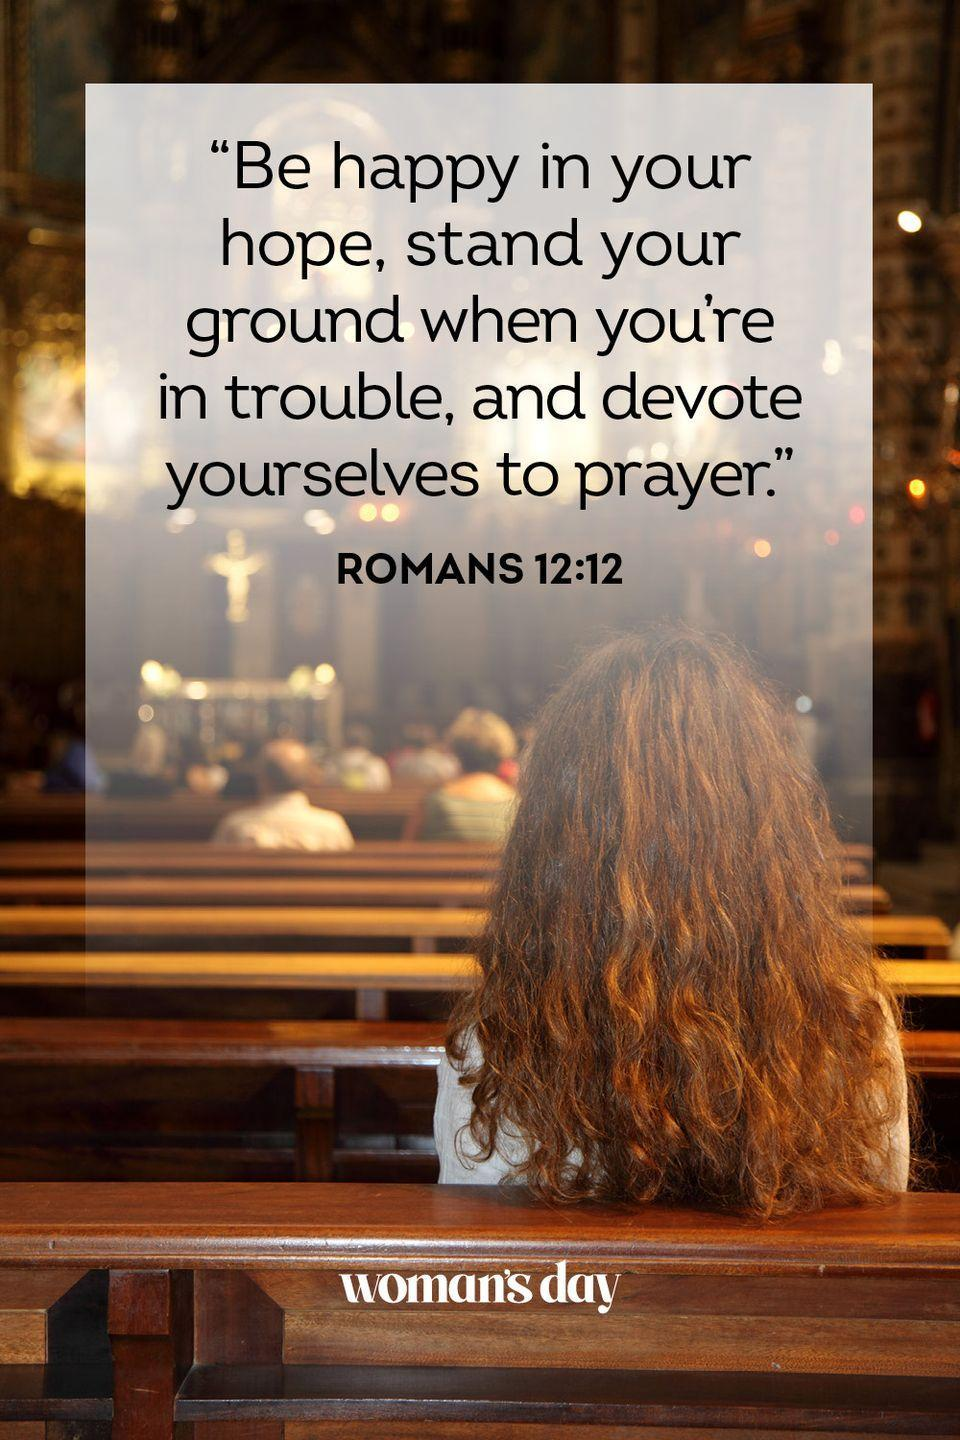 """<p>""""Be happy in your hope, stand your ground when you're in trouble, and devote yourselves to prayer."""" — Romans 12:12</p><p><strong>The Good News: </strong>These are the three keys to living a happy life. Enjoy when things are good, know that we can make it through the rough patches, and turn to God whenever we may need him.</p>"""